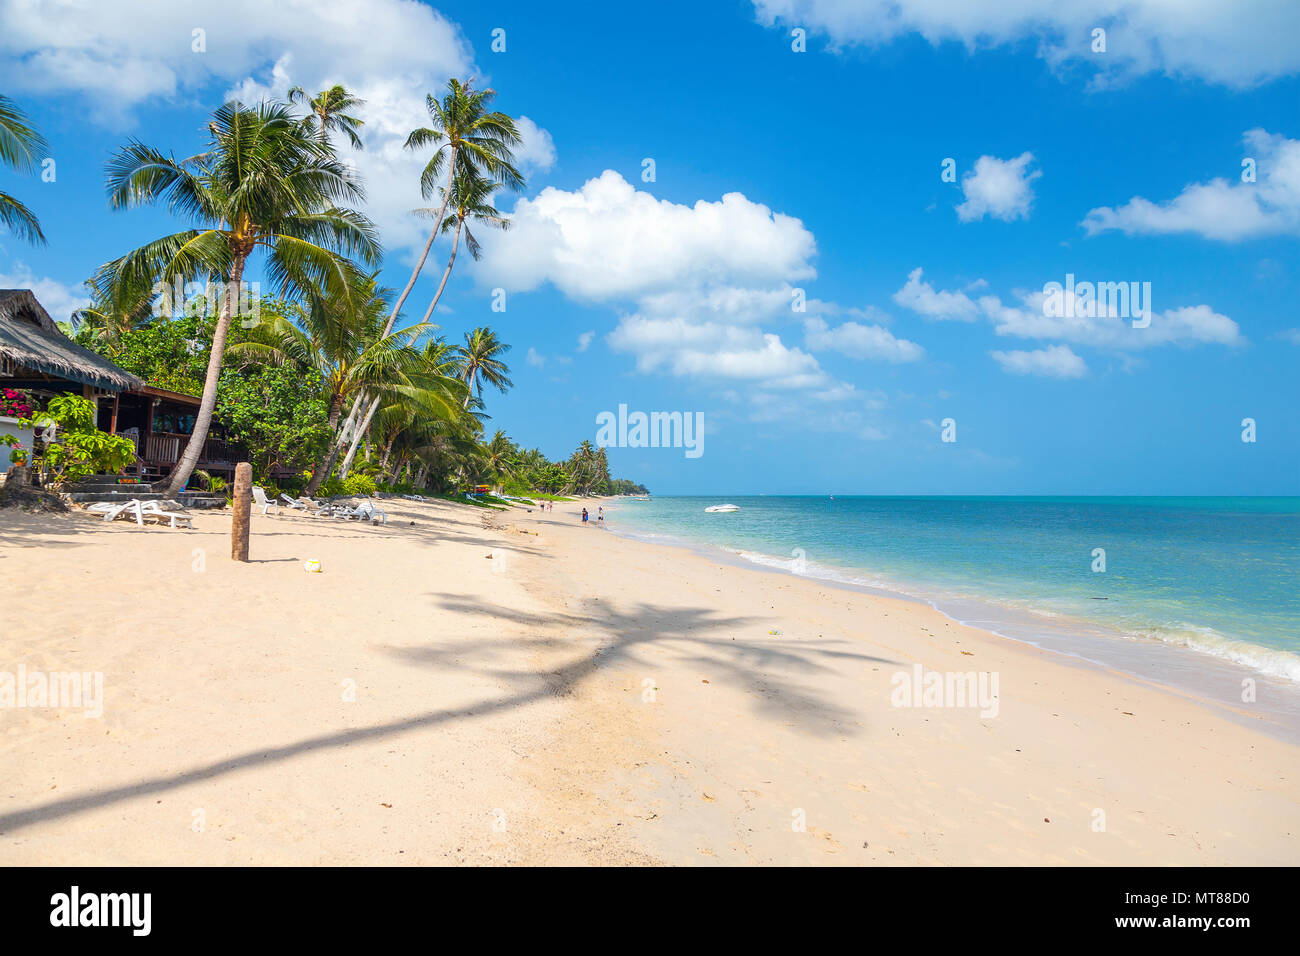 Bang Po Beach in Koh Samui, Thailand - Stock Image